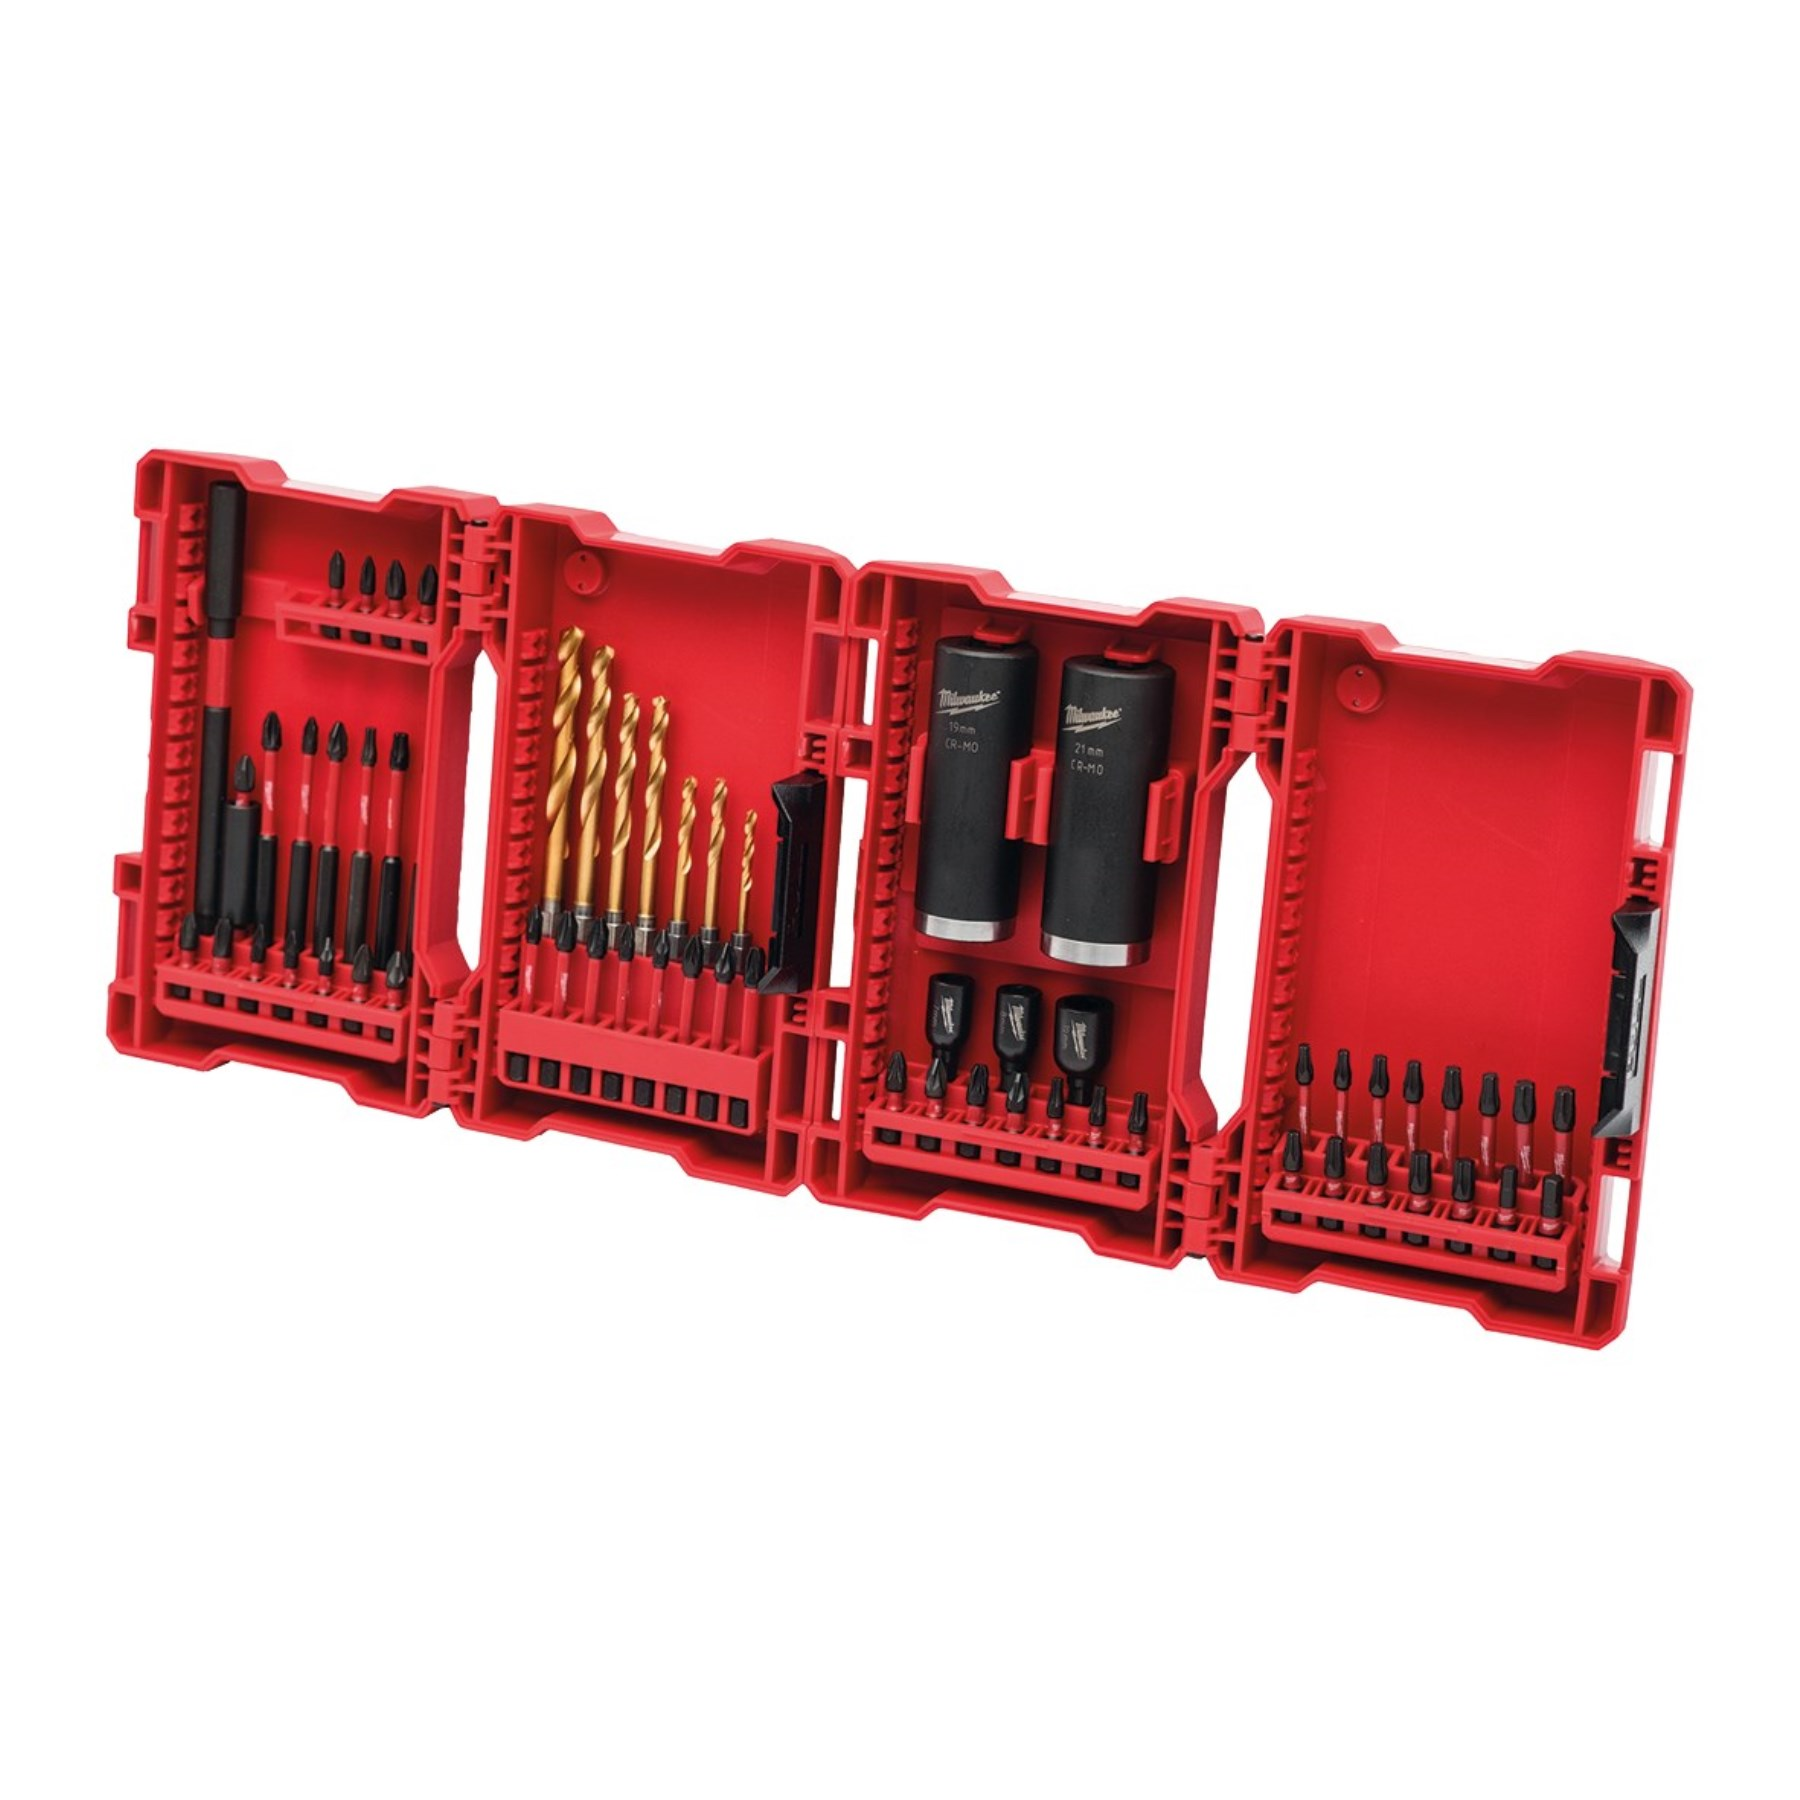 1252400 - Shockwave Bit Set 62tlg.